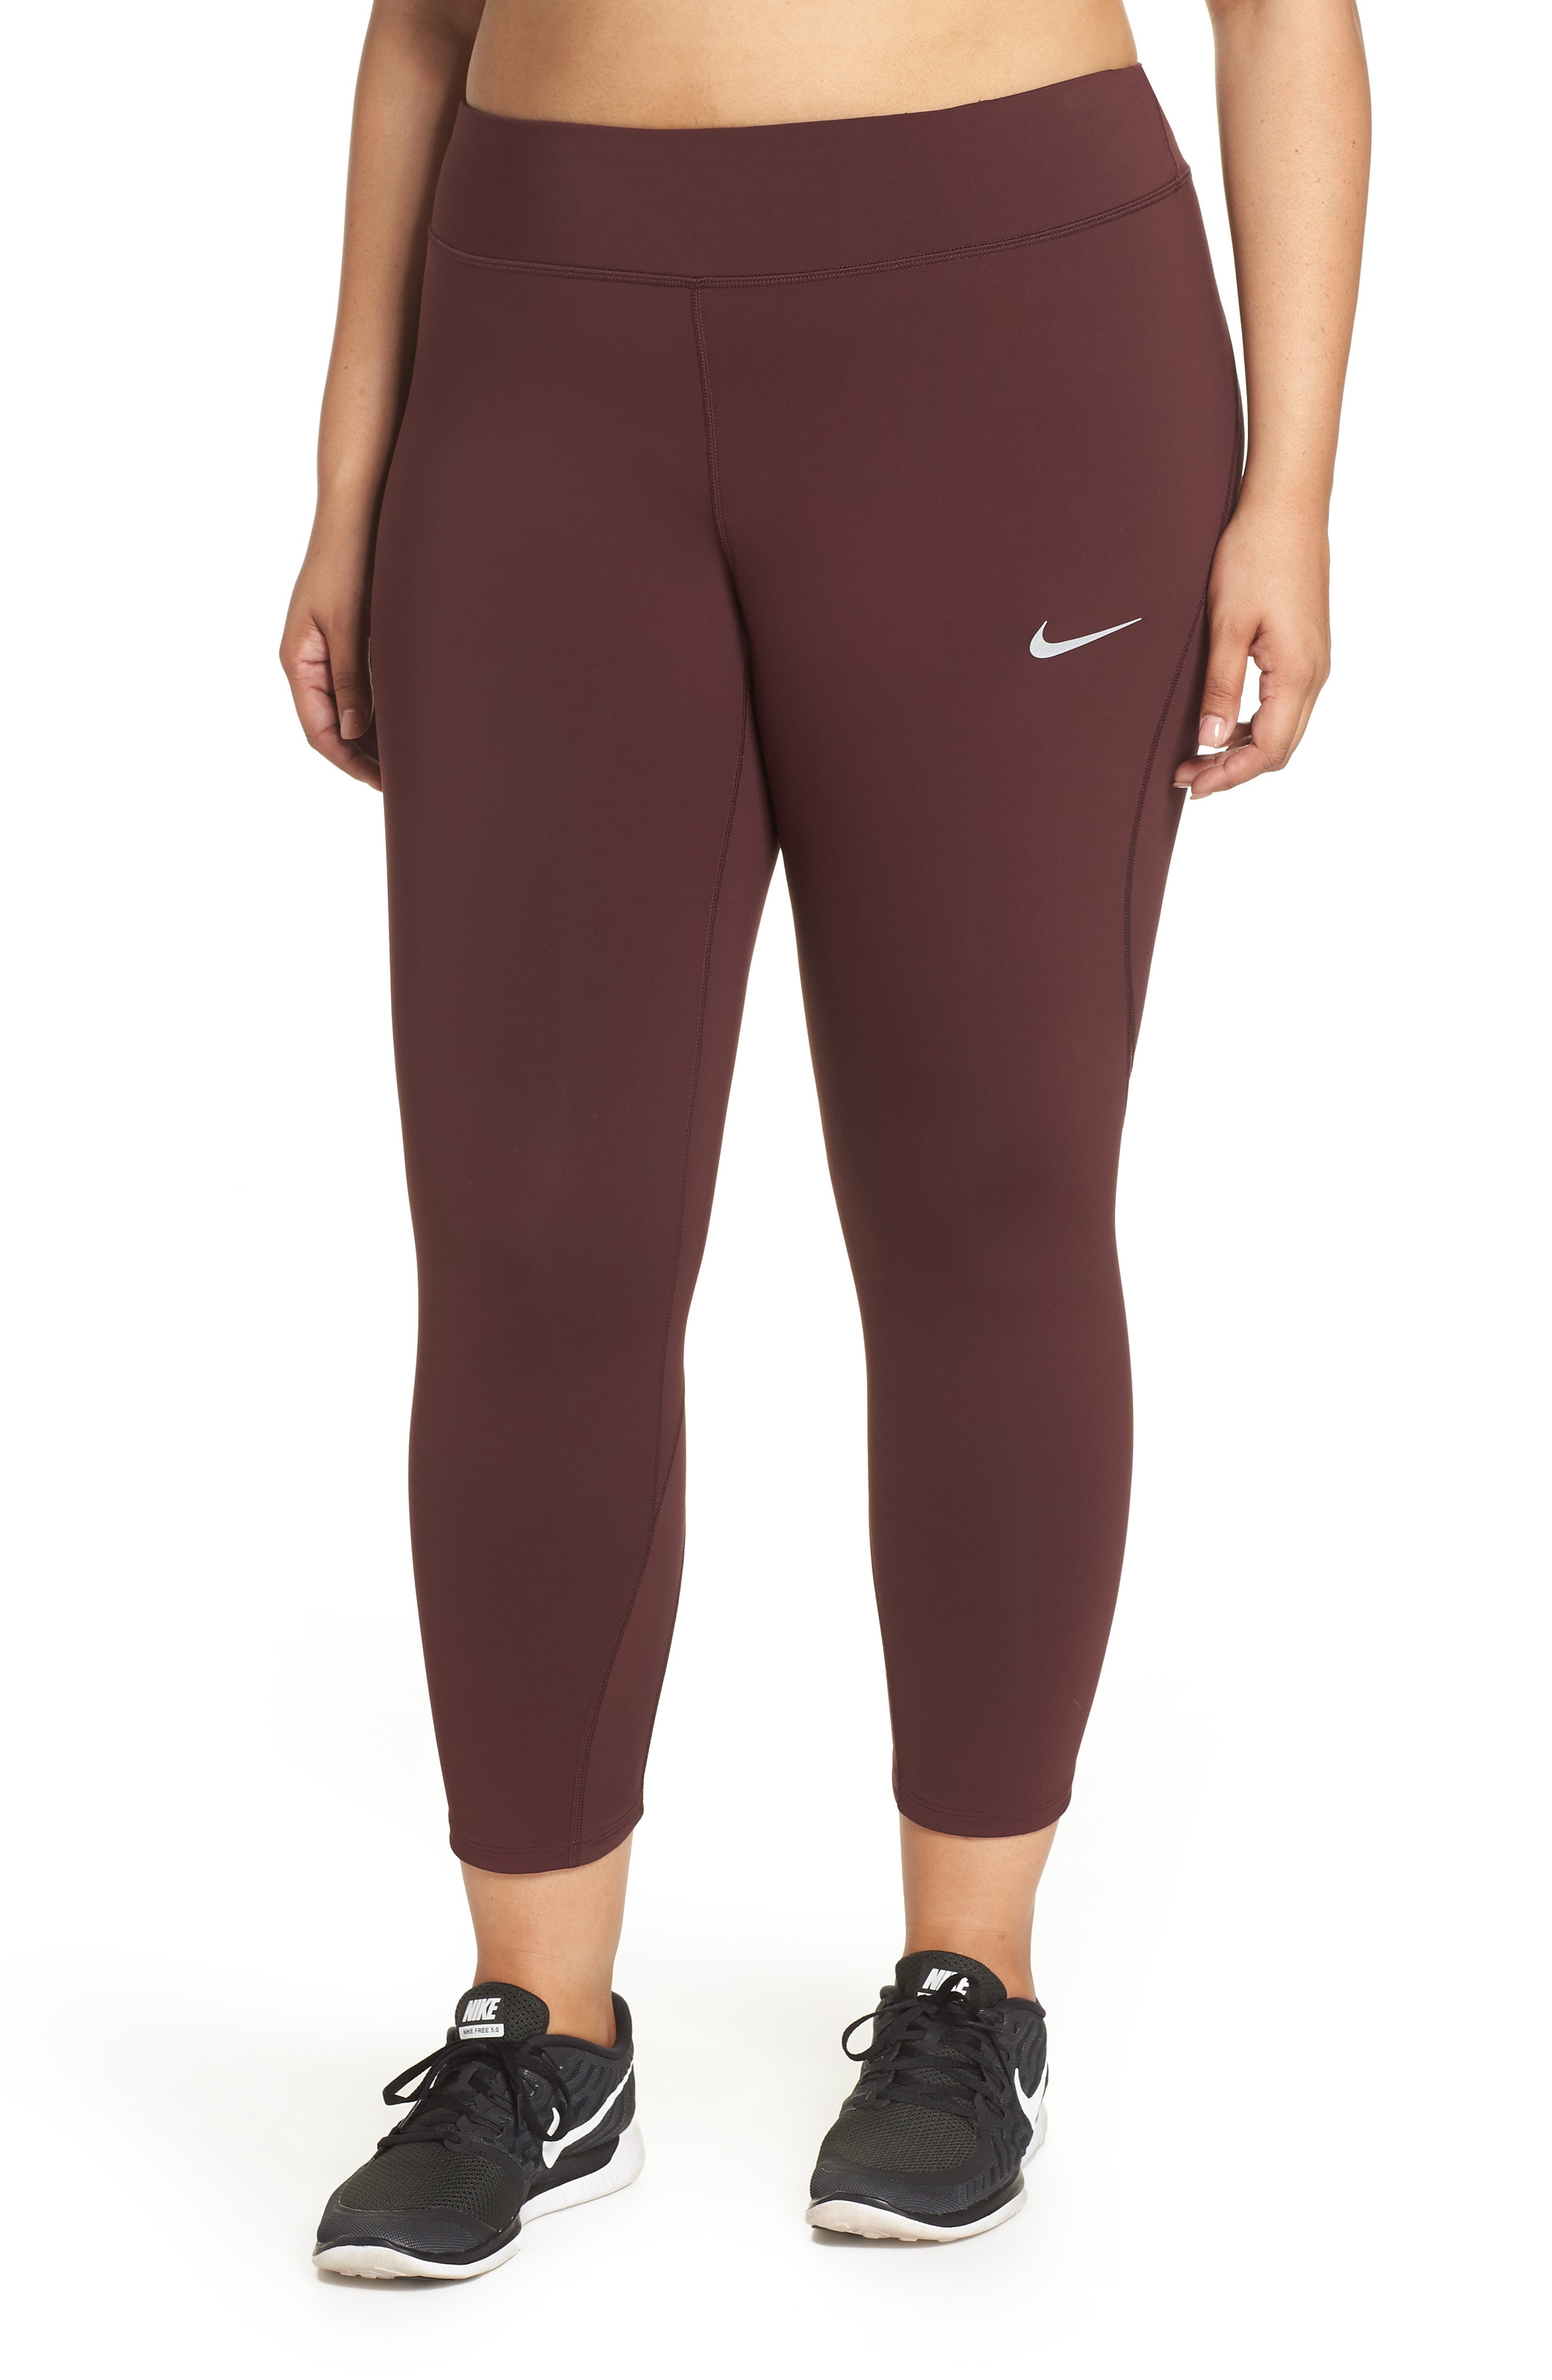 Nike Power Epic Lux Crop Running Tights (Plus Size)